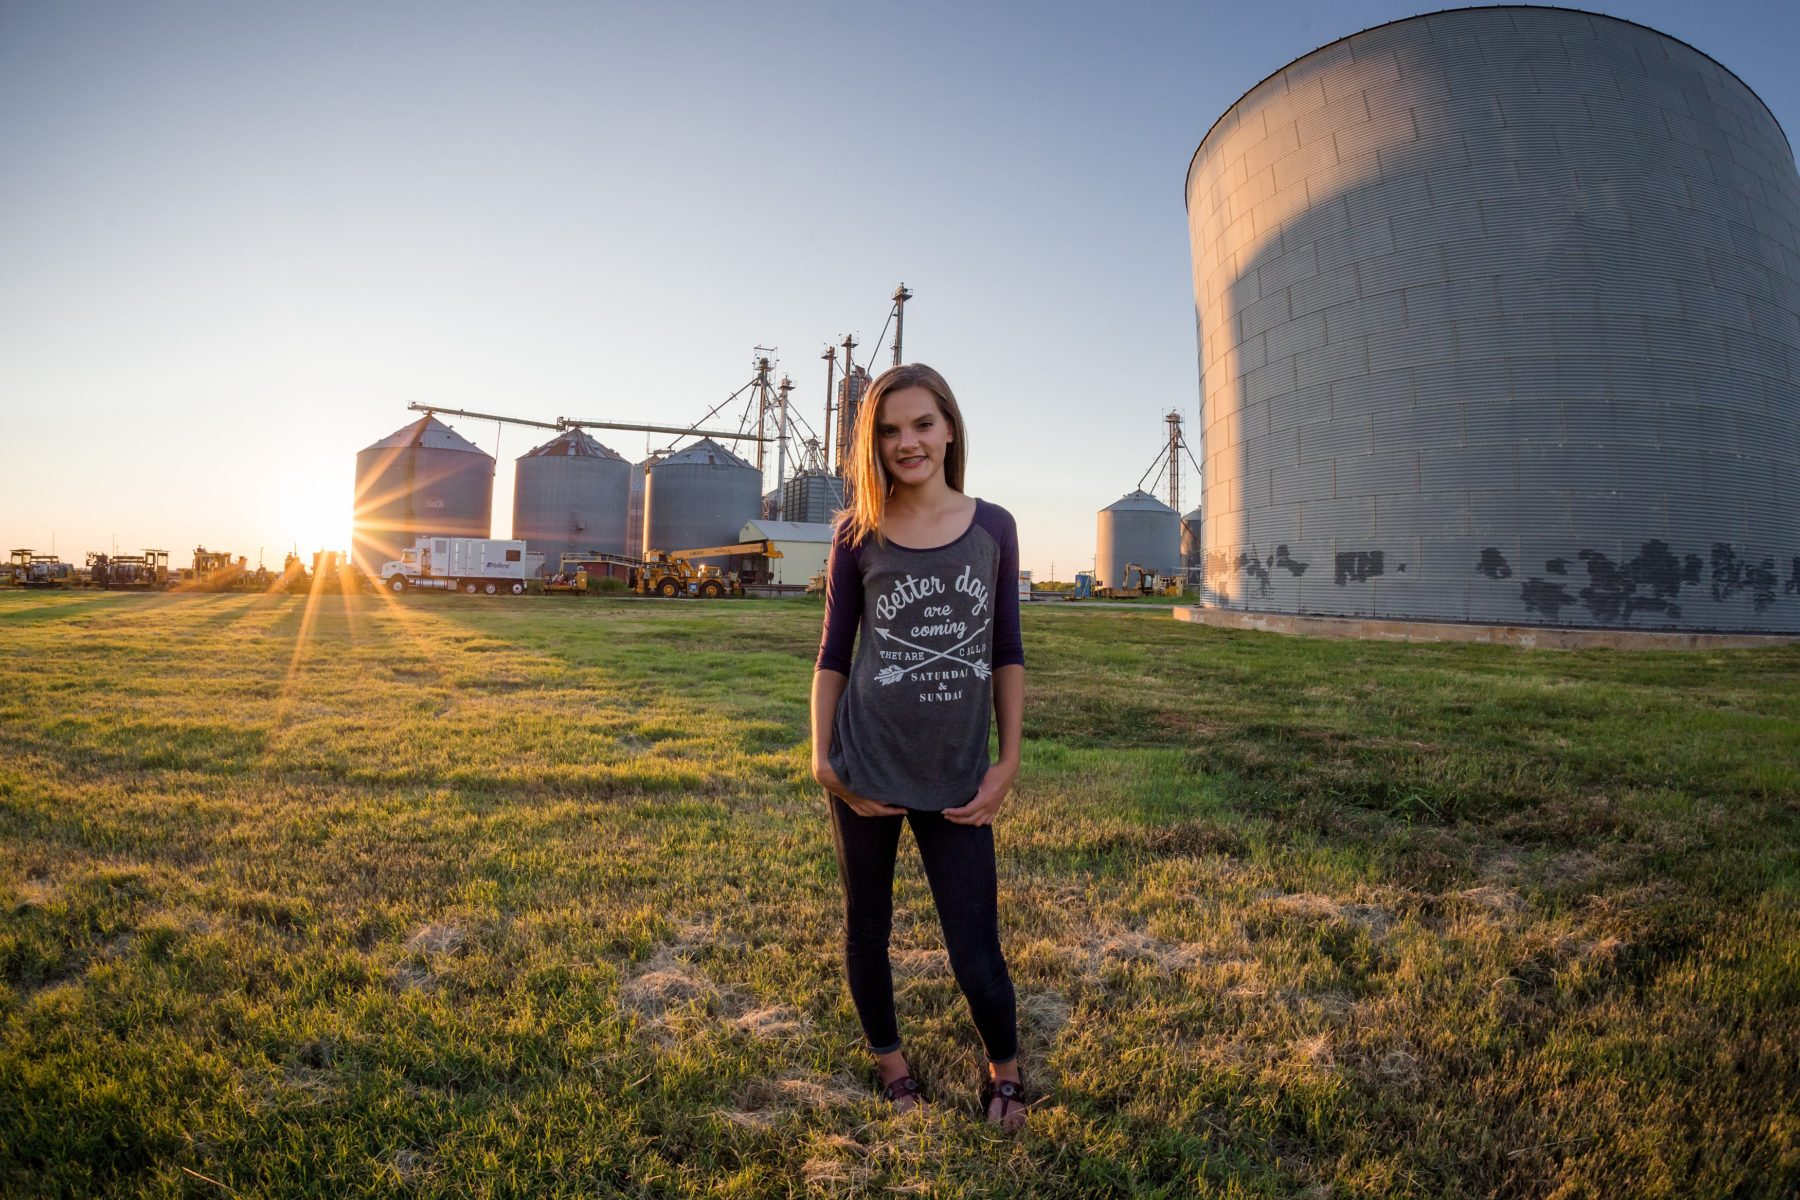 Shelly Niehaus Photography| Dallas Senior Photographer| Senior Girl Prosper, TX Silos